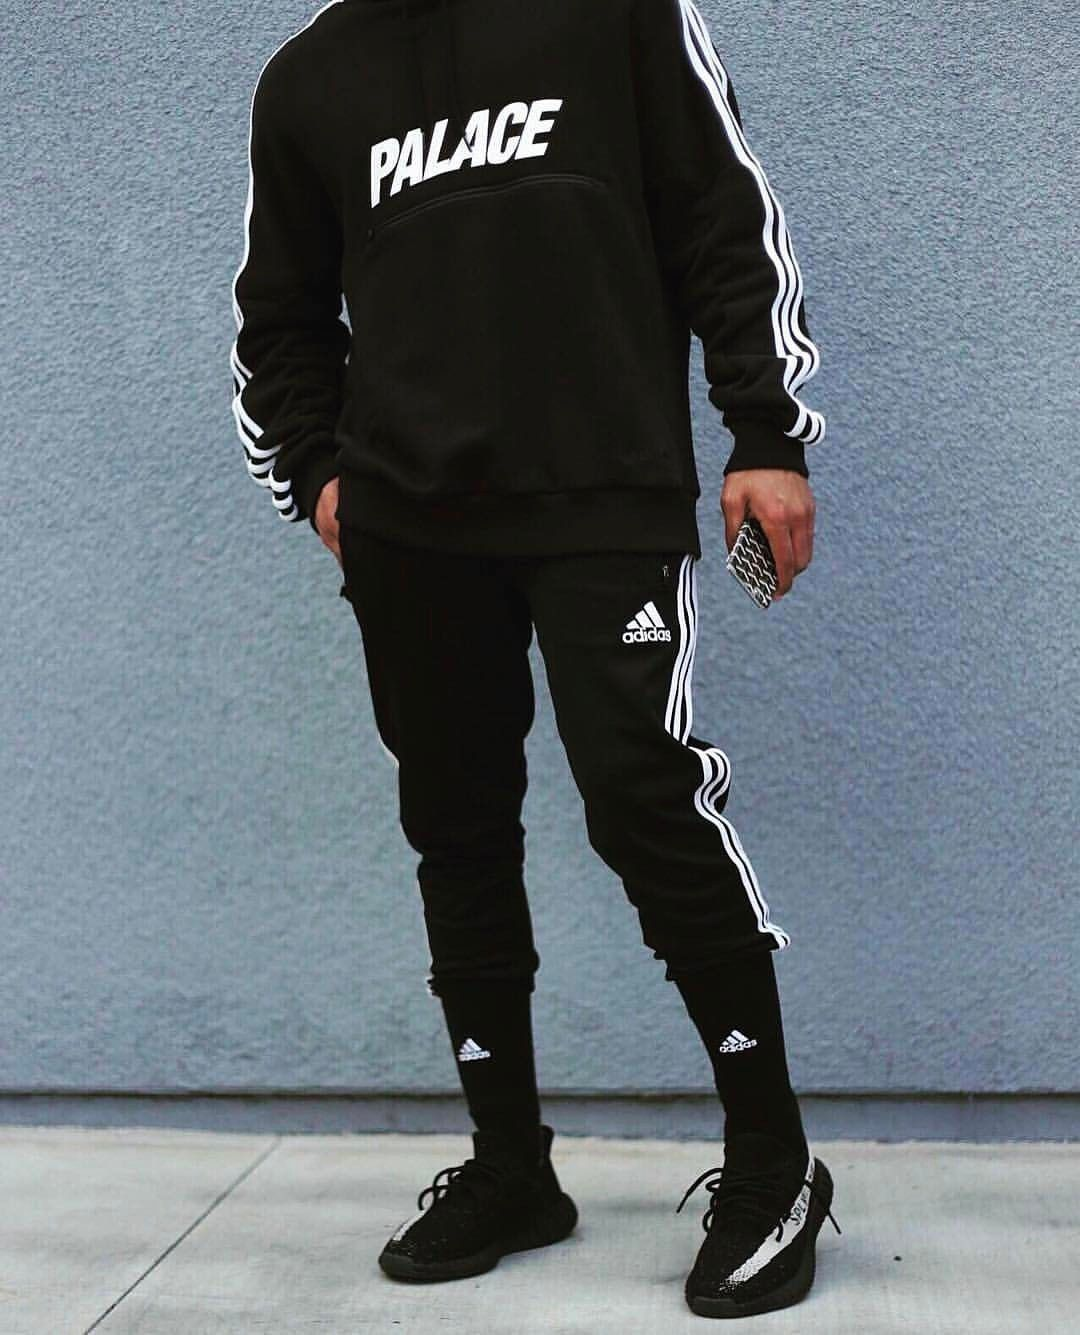 Follow @edriancortes for similar posts / / / / / palace adidas streetwear  blvck black outfit